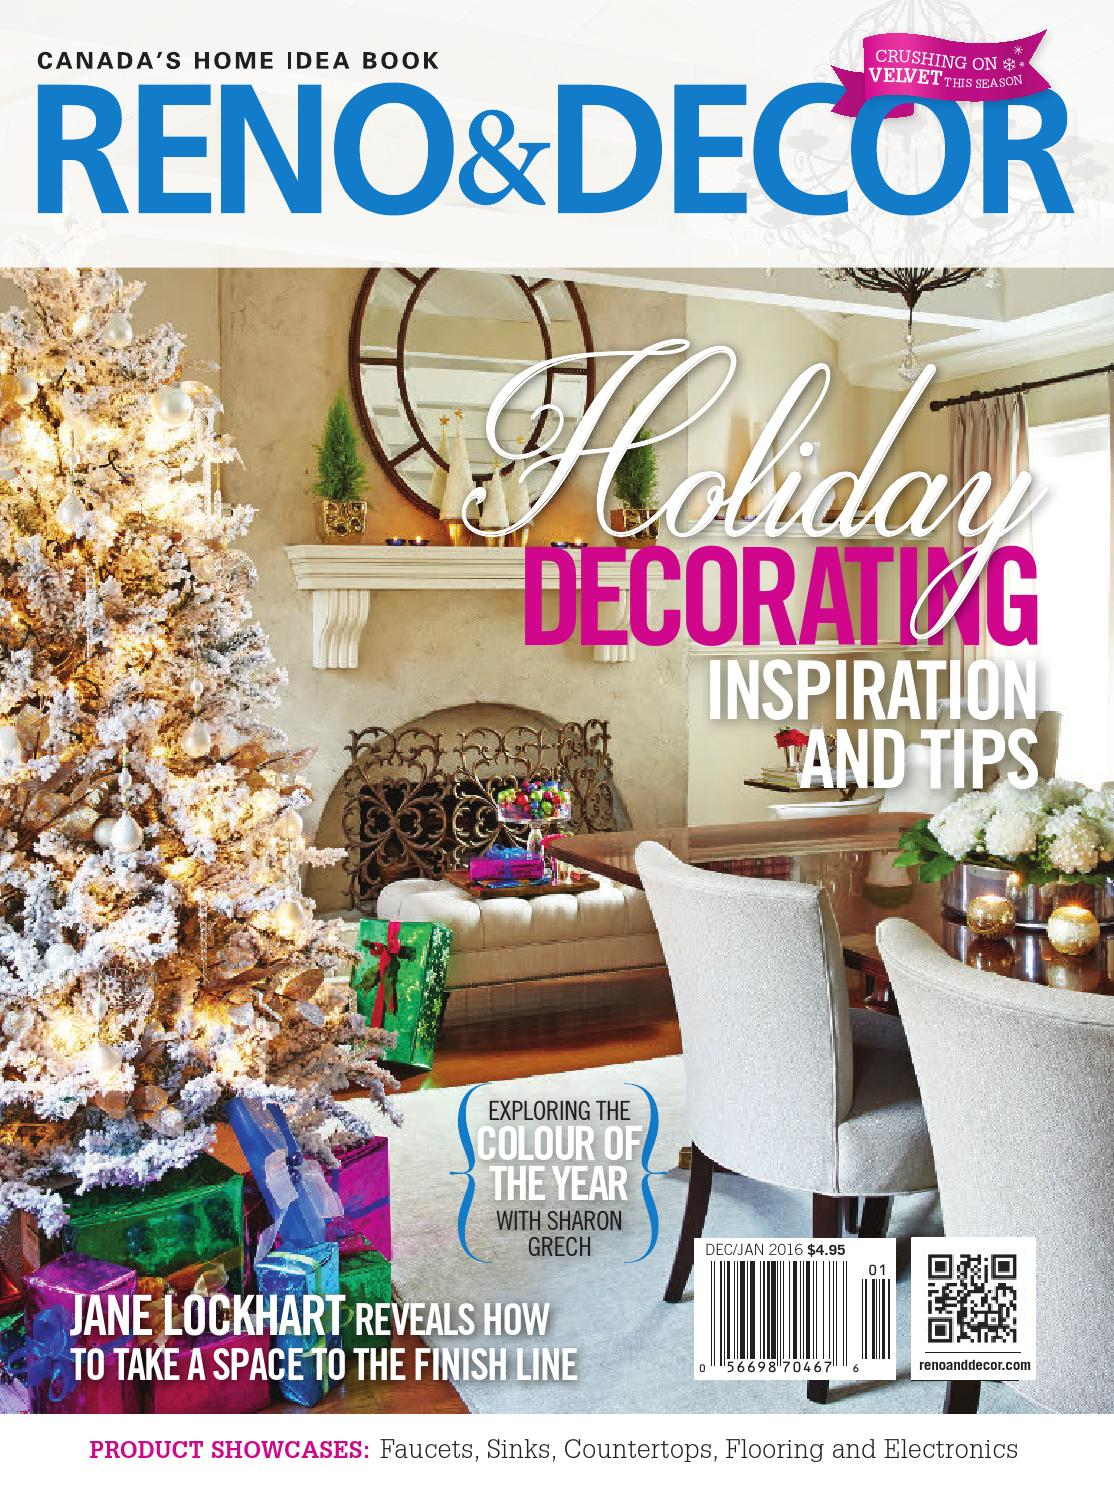 Reno U0026 Decor Magazine Dec/Jan 2016 By HOMES Publishing Group   Issuu